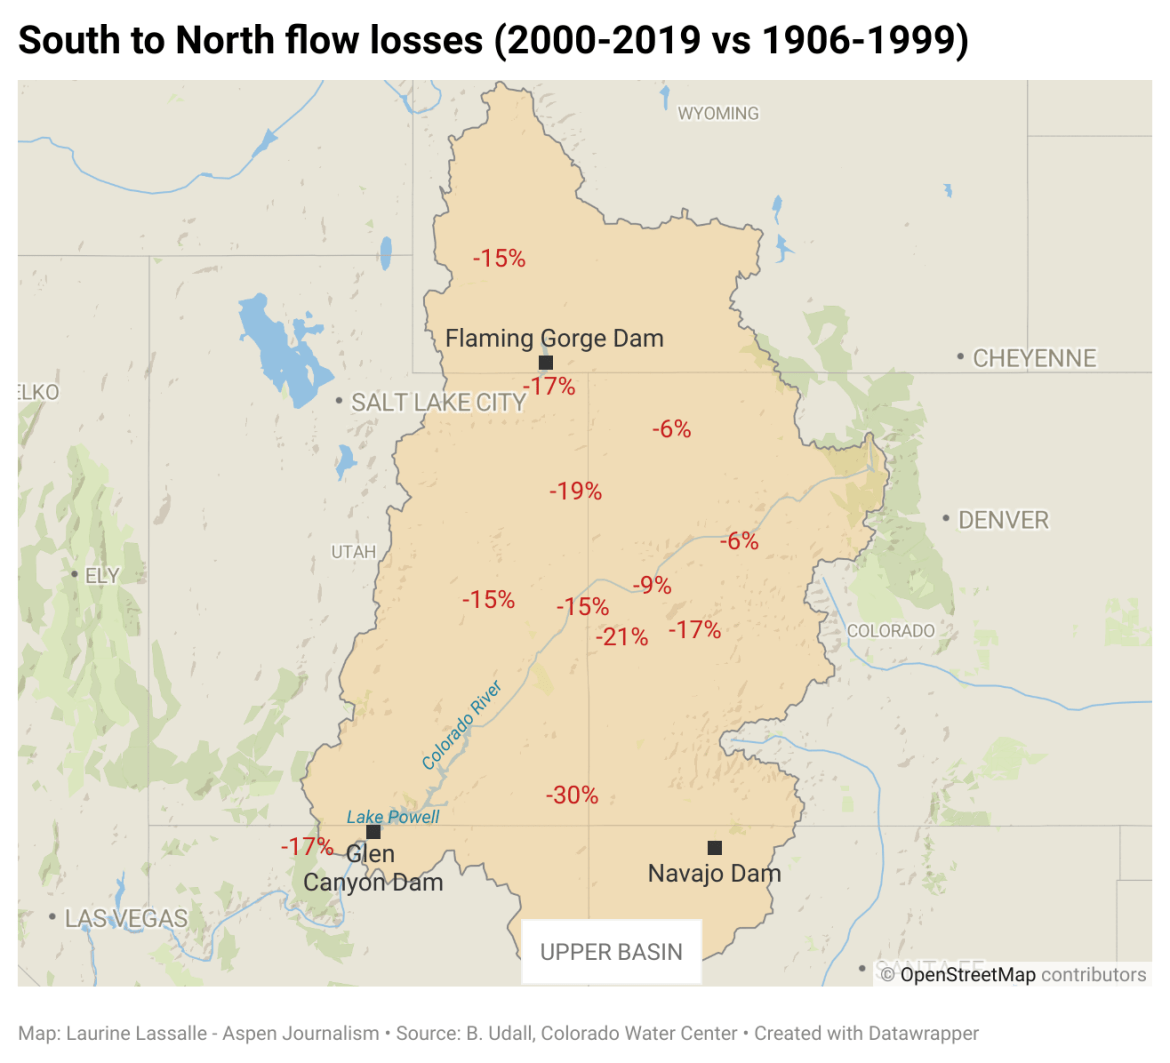 This map shows the south-to-north flow losses in the upper Colorado River basin, based on natural flow data from the Bureau of Reclamation. The White River, which flows through northwestern Colorado, is an outlier that climate scientist Brad Udall says needs more study.